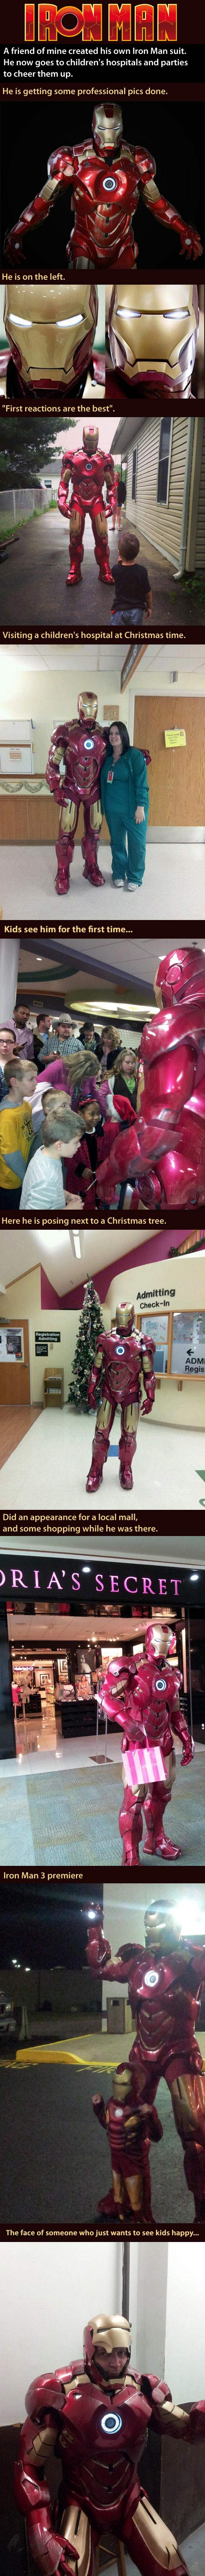 This guy is a real life super hero..